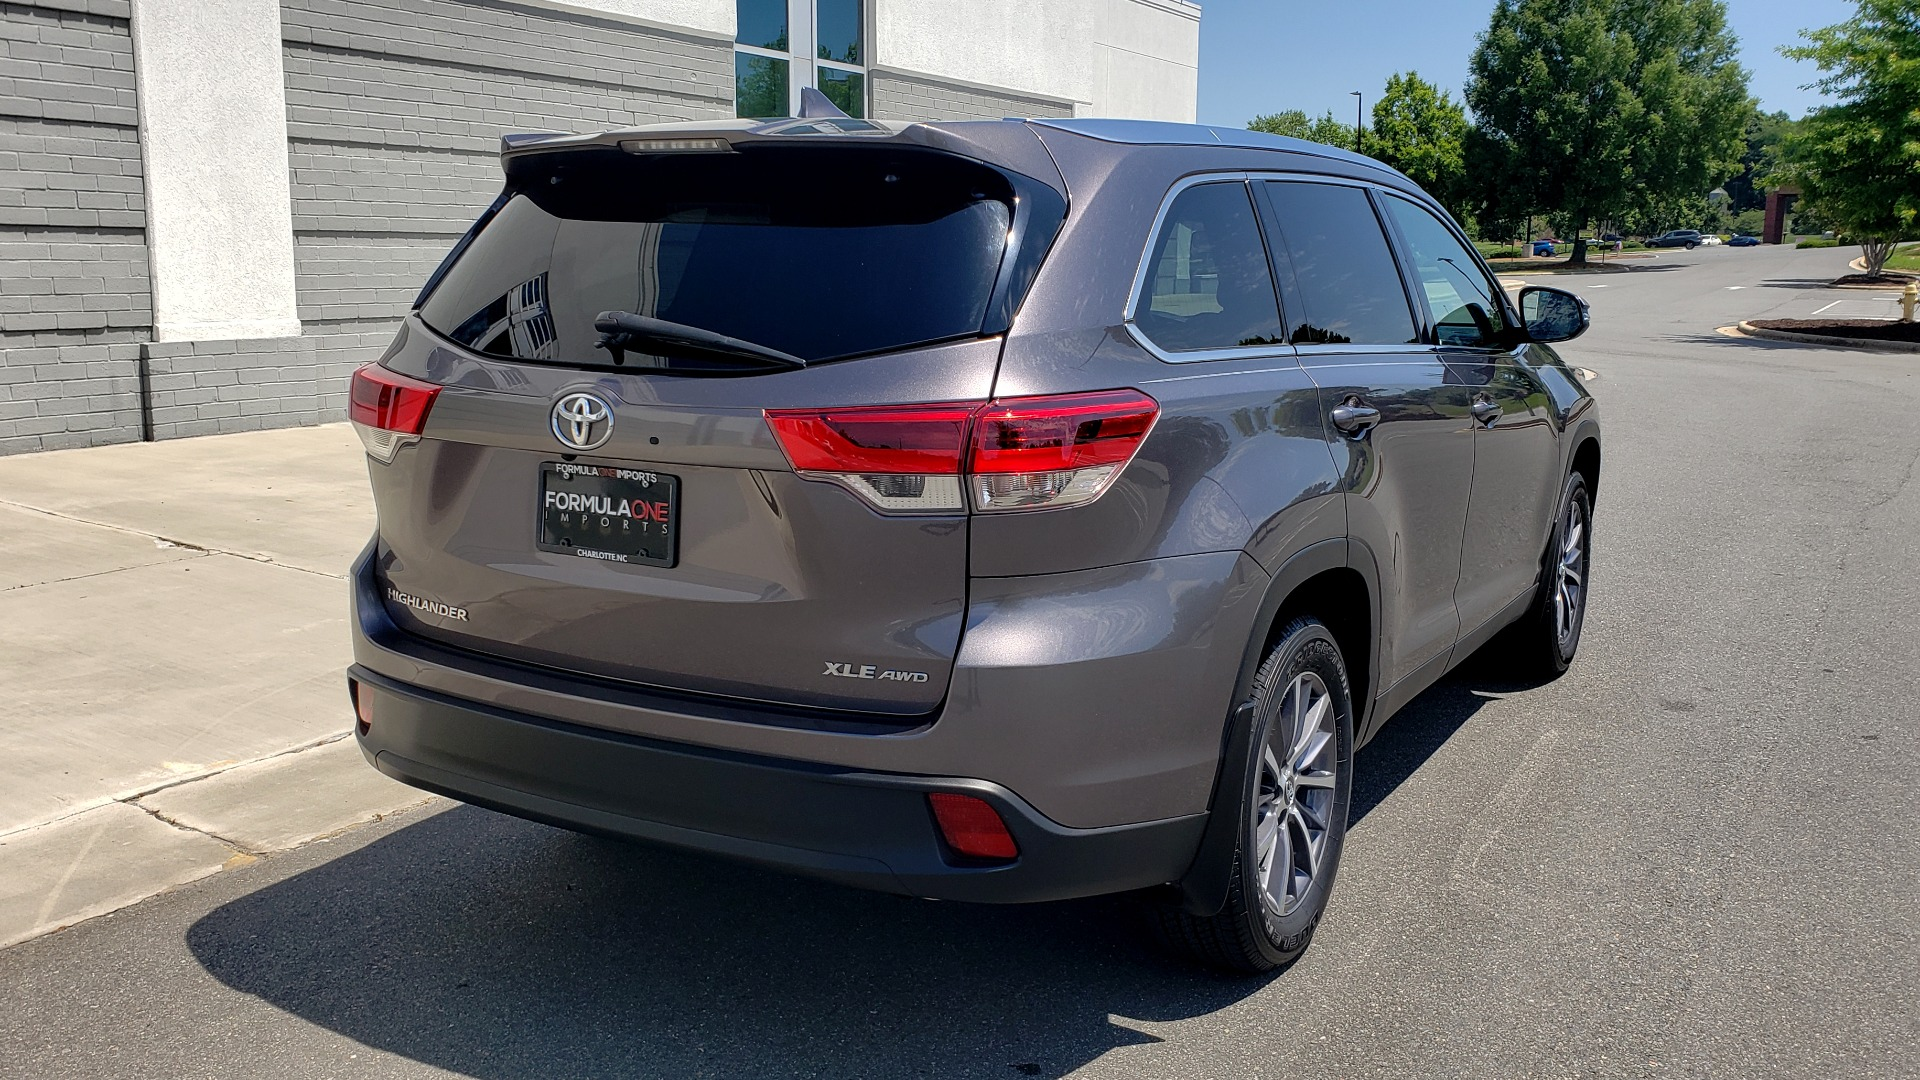 Used 2019 Toyota HIGHLANDER XLE / 3.5L V6 / AWD / LEATHER / 8-SPD AUTO / 1-OWNER for sale $37,500 at Formula Imports in Charlotte NC 28227 2